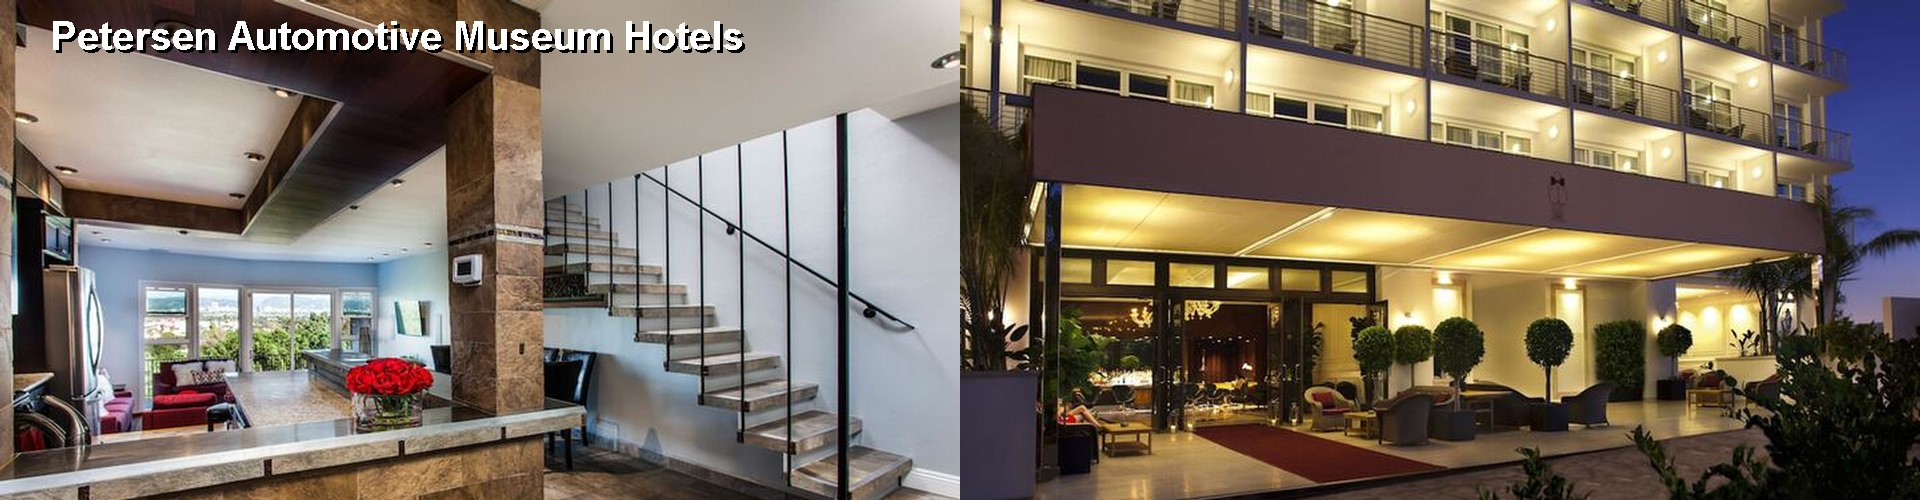 5 Best Hotels near Petersen Automotive Museum